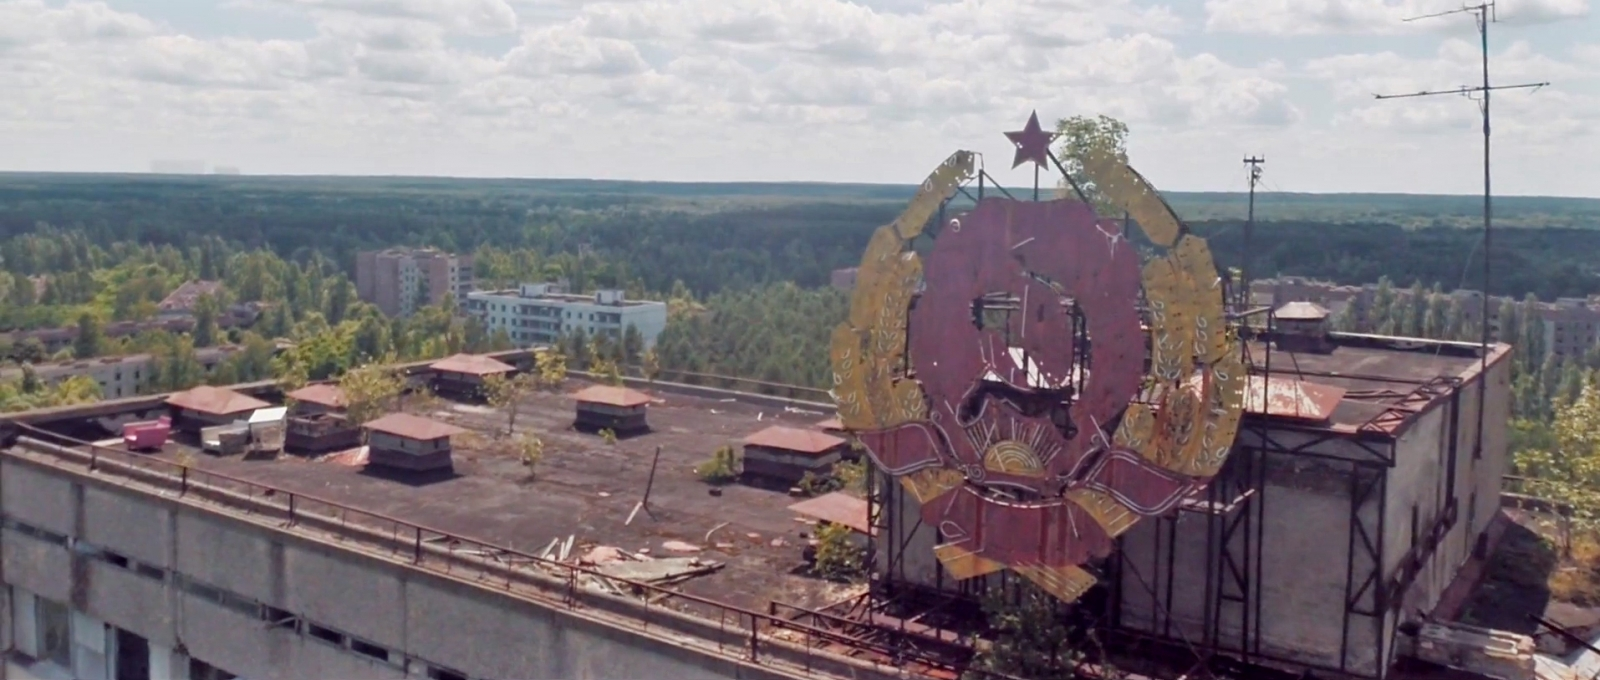 Chernobyl: Helicopter Drone Captures Eerie Post-Apocalyptic Video Footage of Decaying City